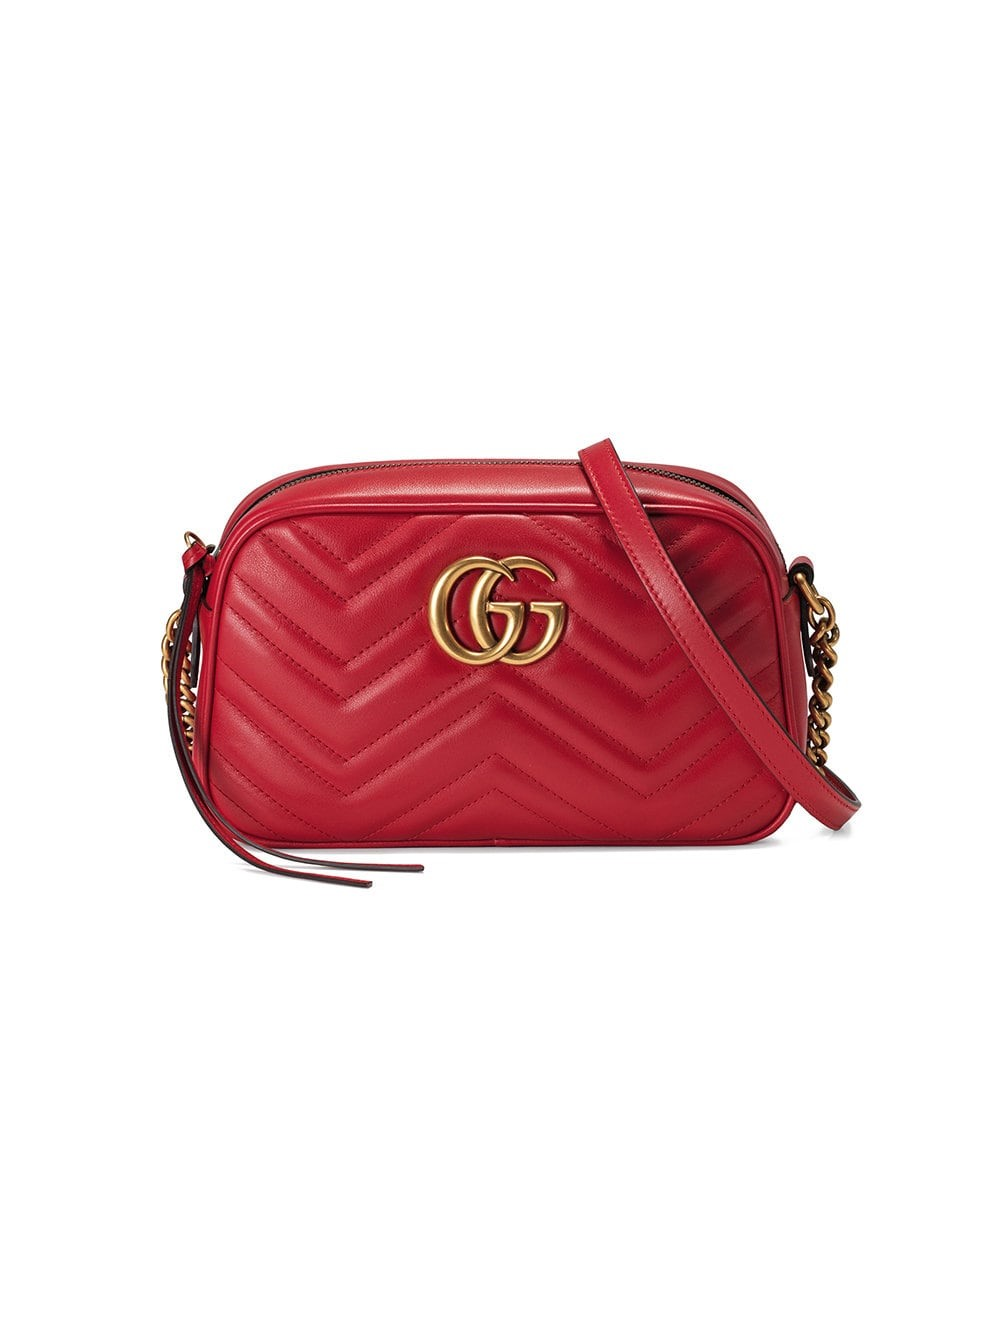 574611ac5 gucci GG MARMONT SHOULDER BAG available on montiboutique.com - 25880